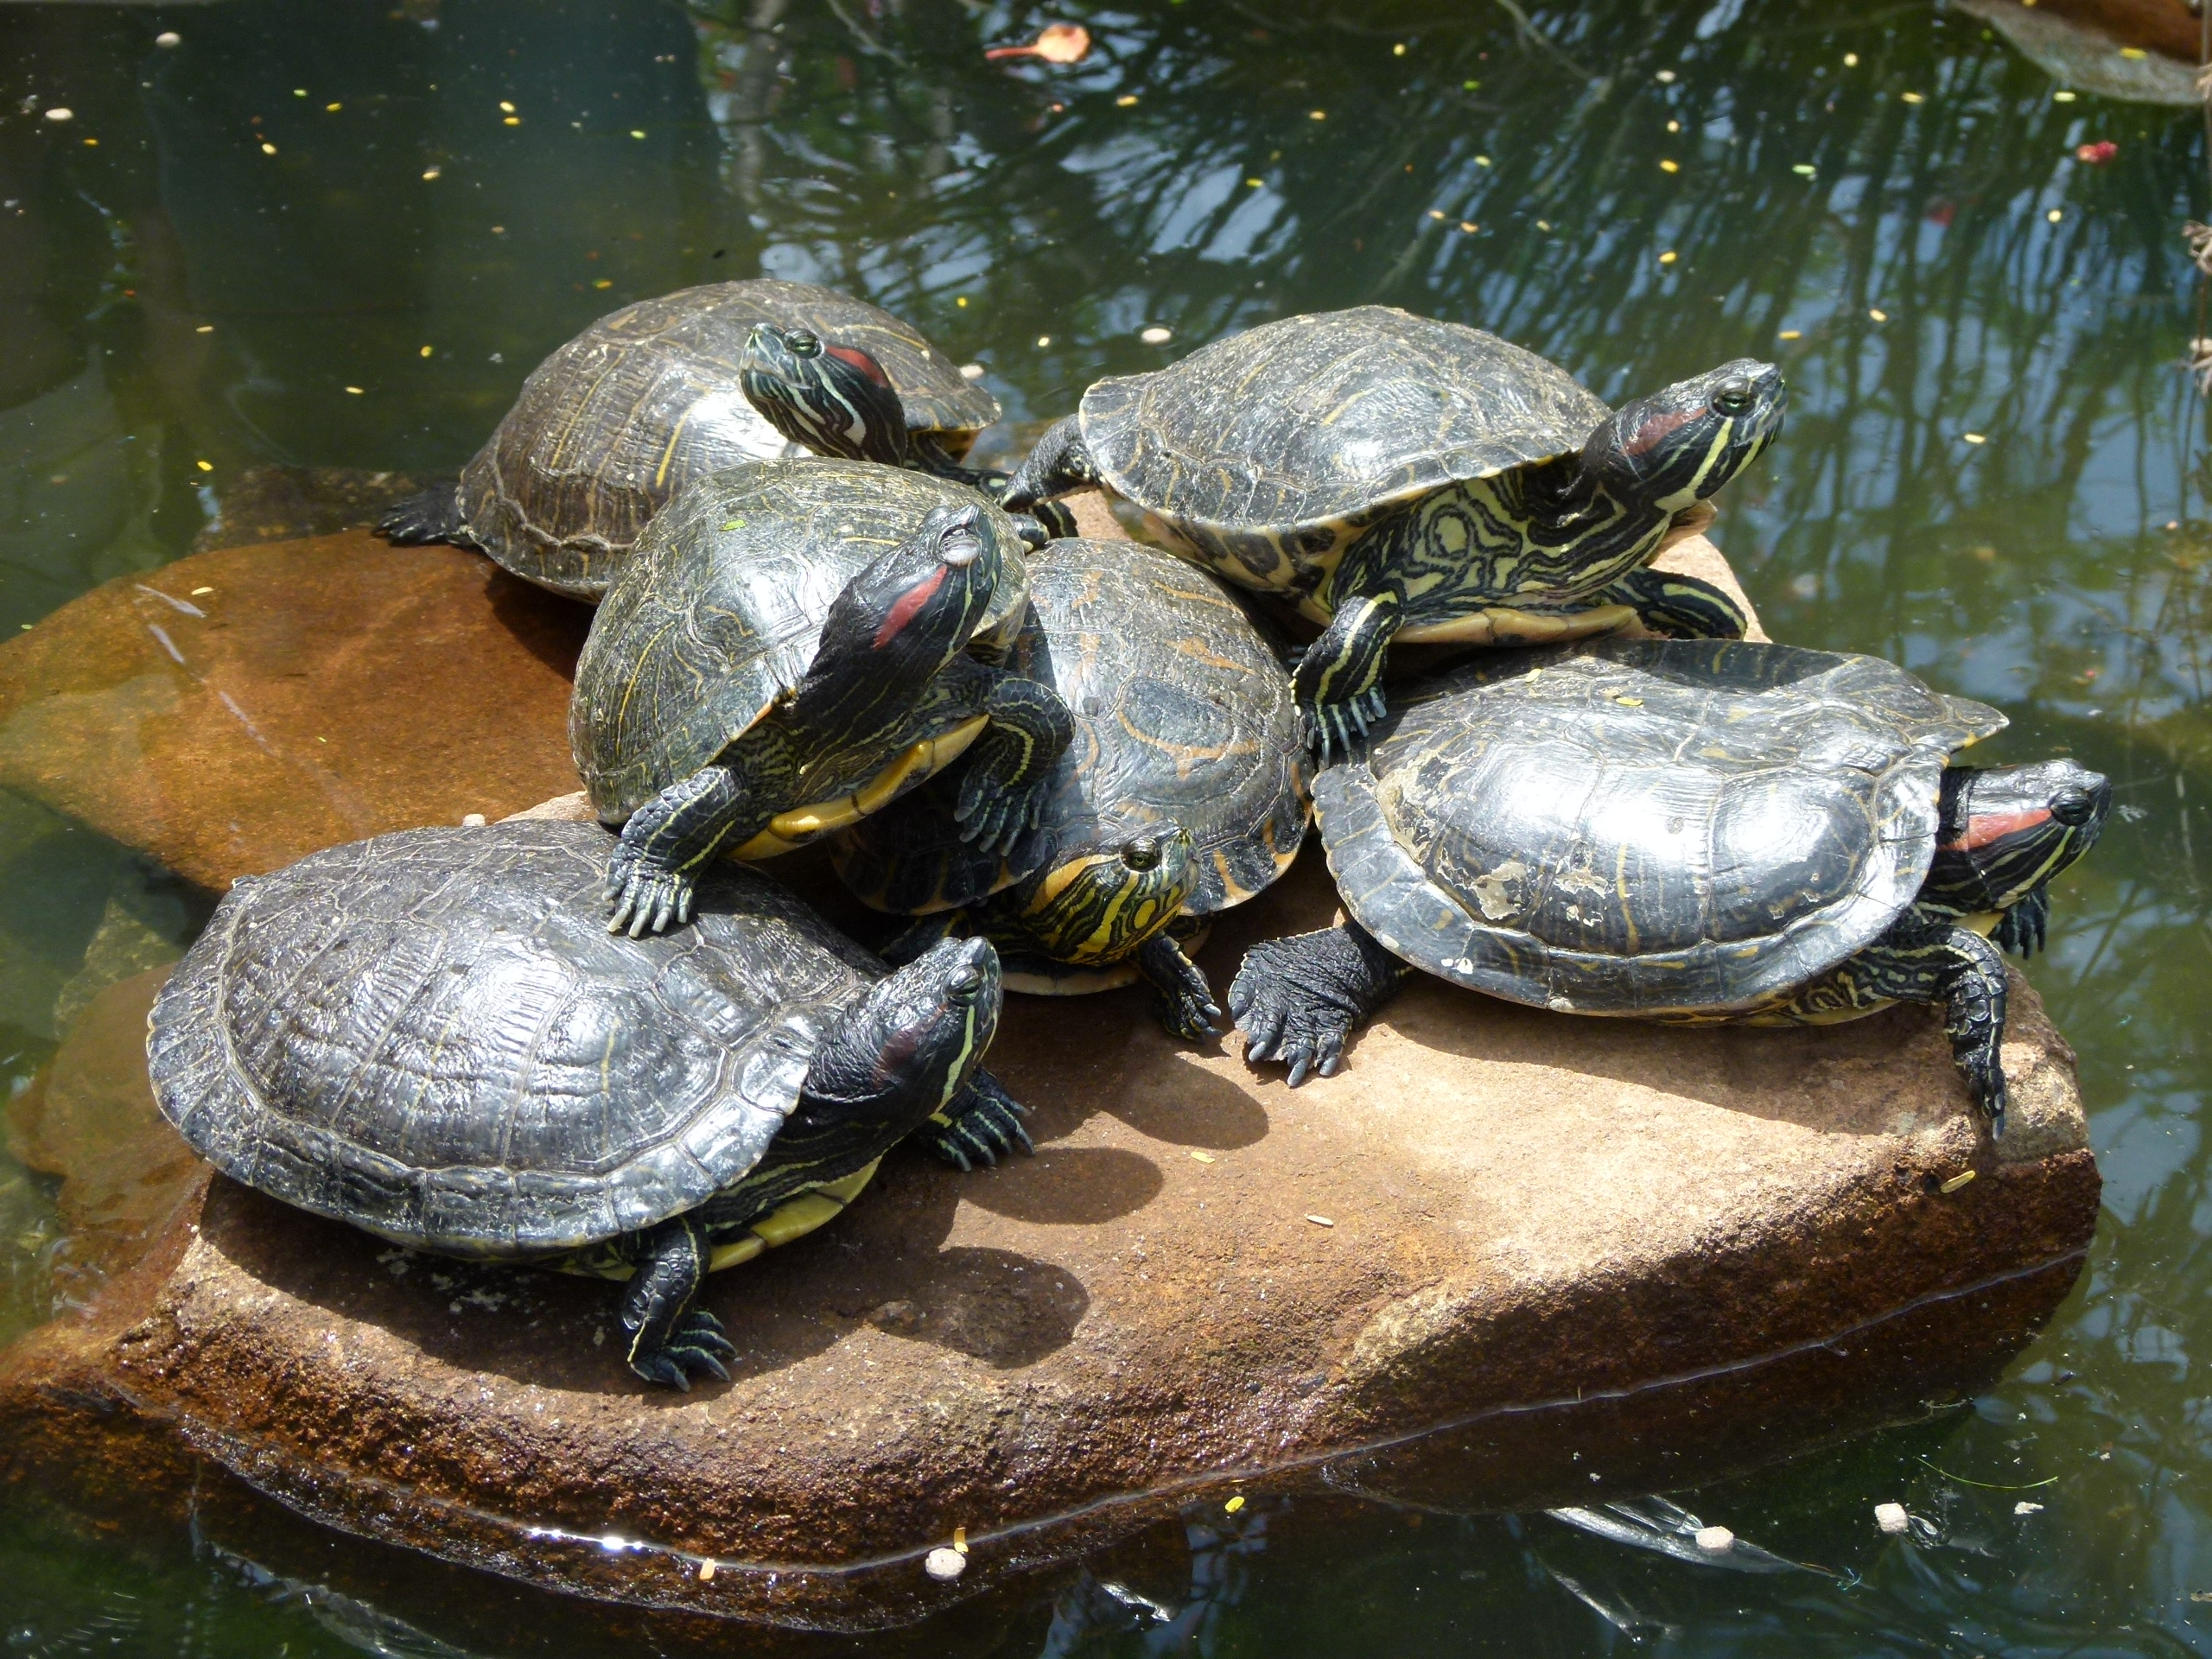 Turtles on a stone in Brazil; Image credit